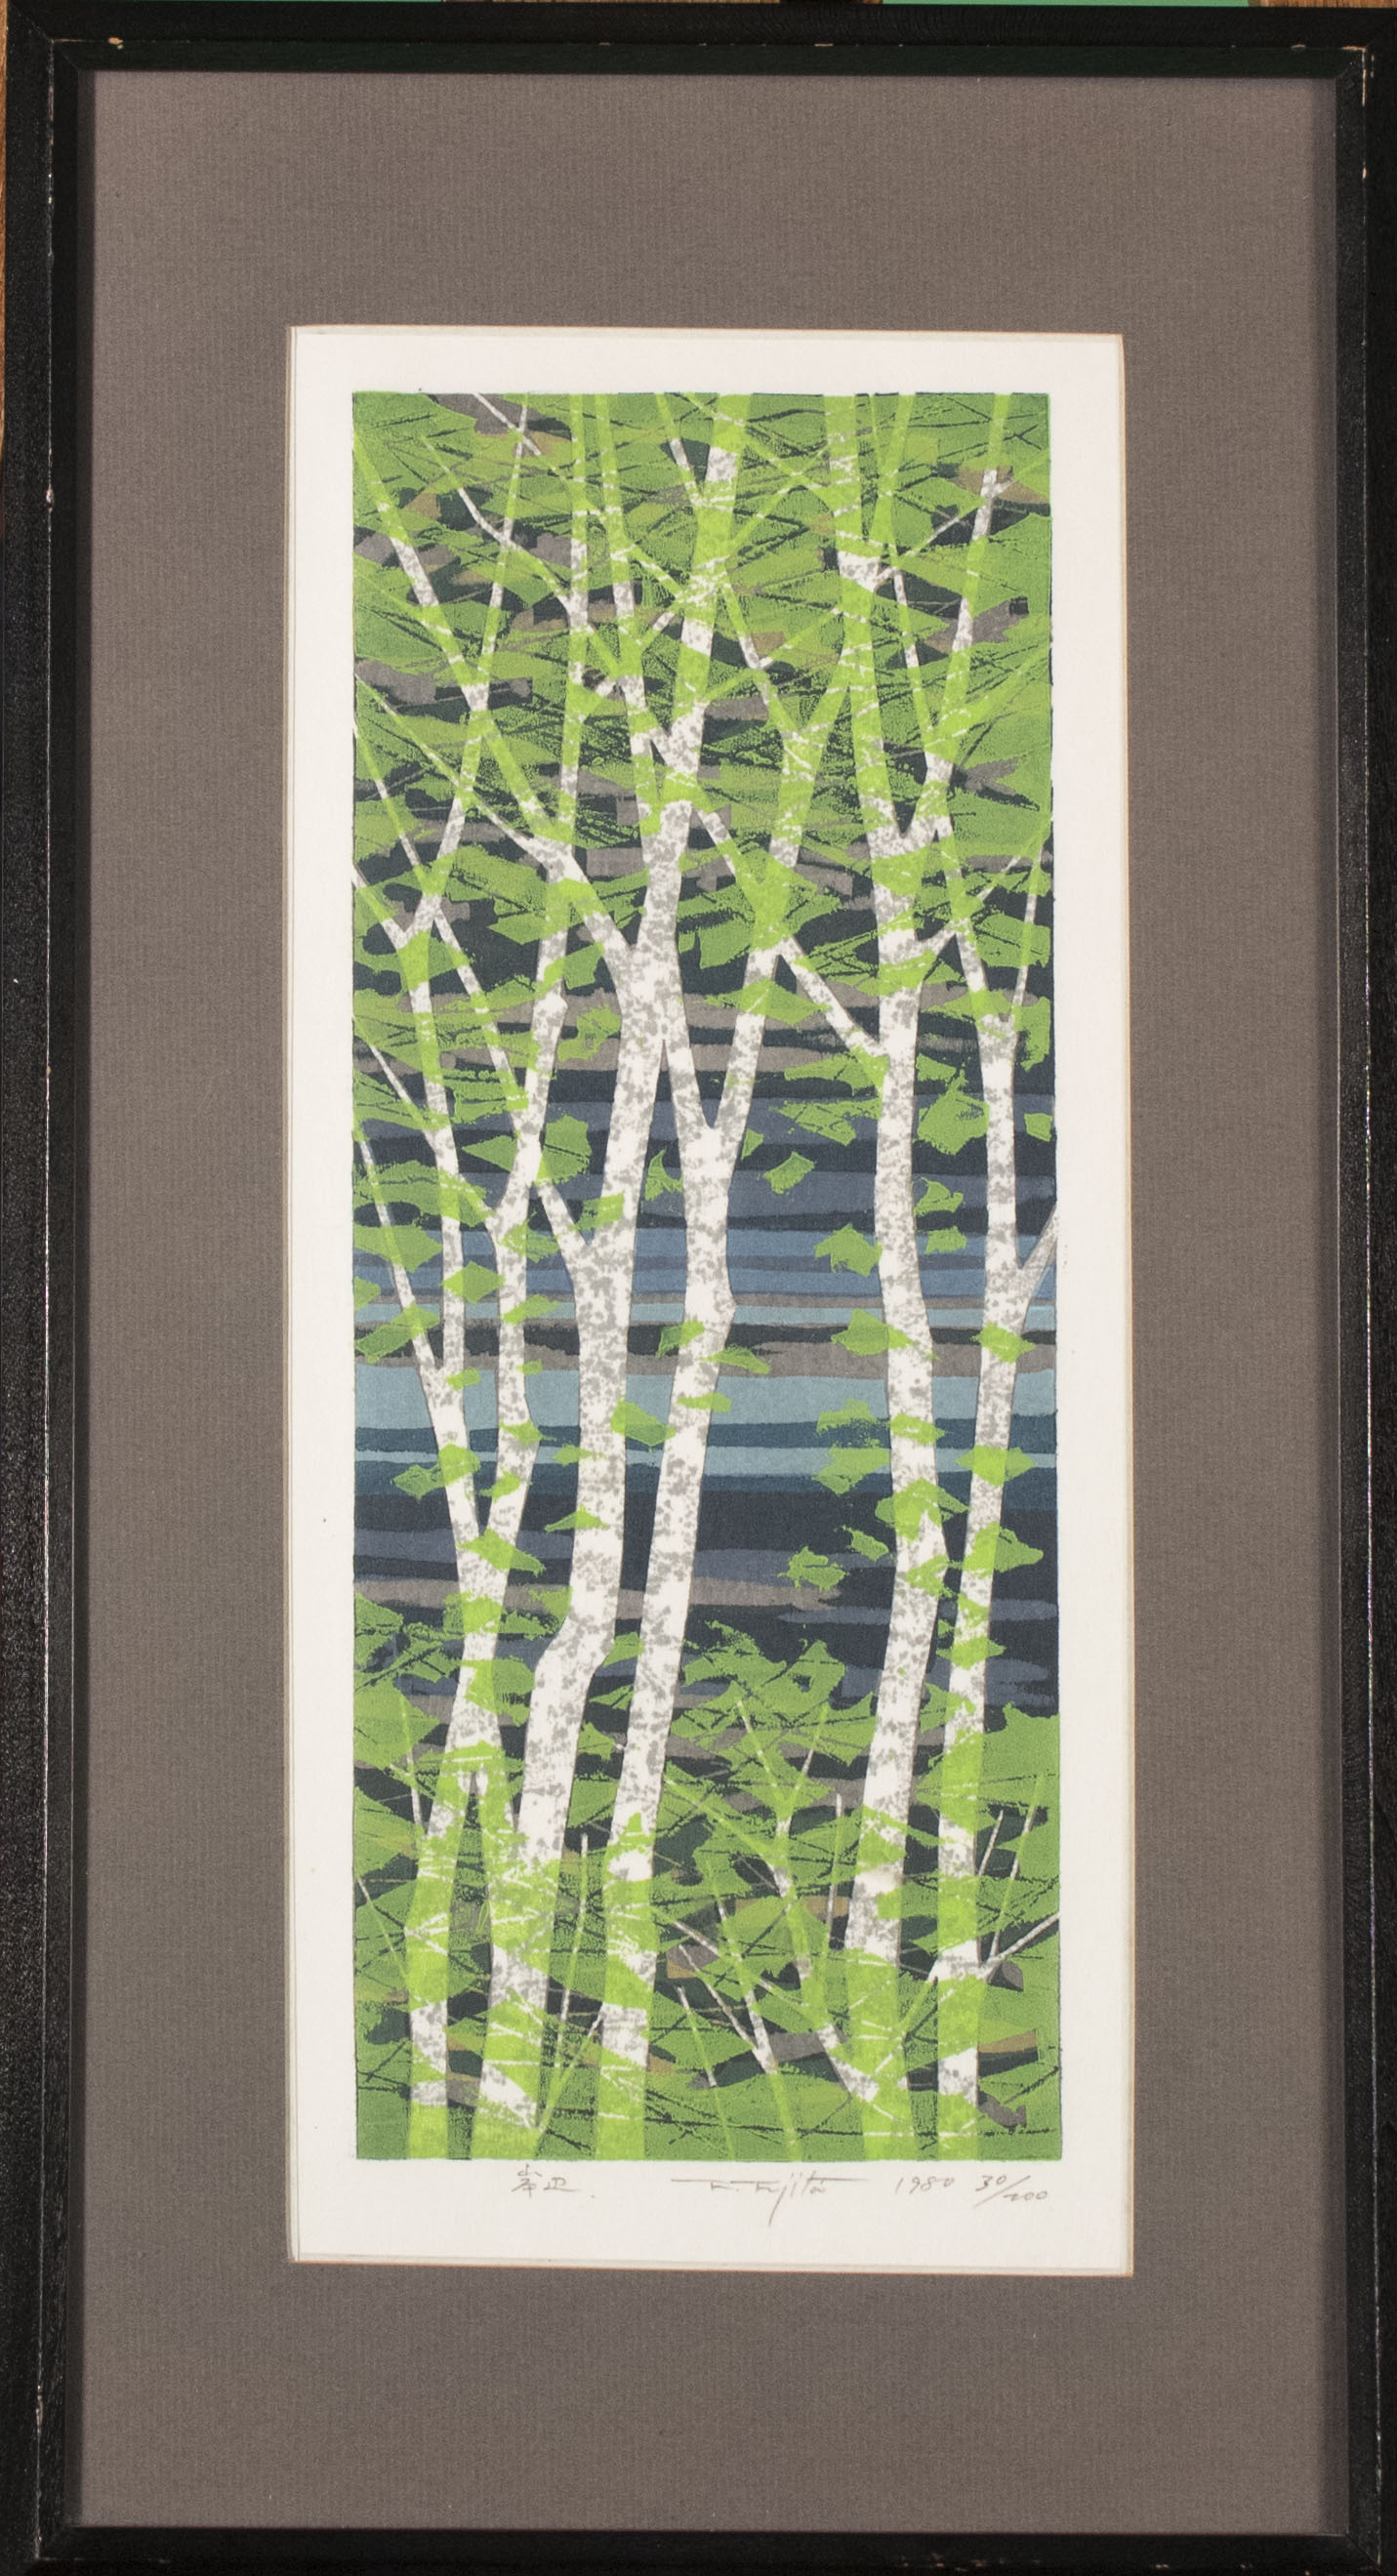 woodblock print of slender white trees with leaves against the sky